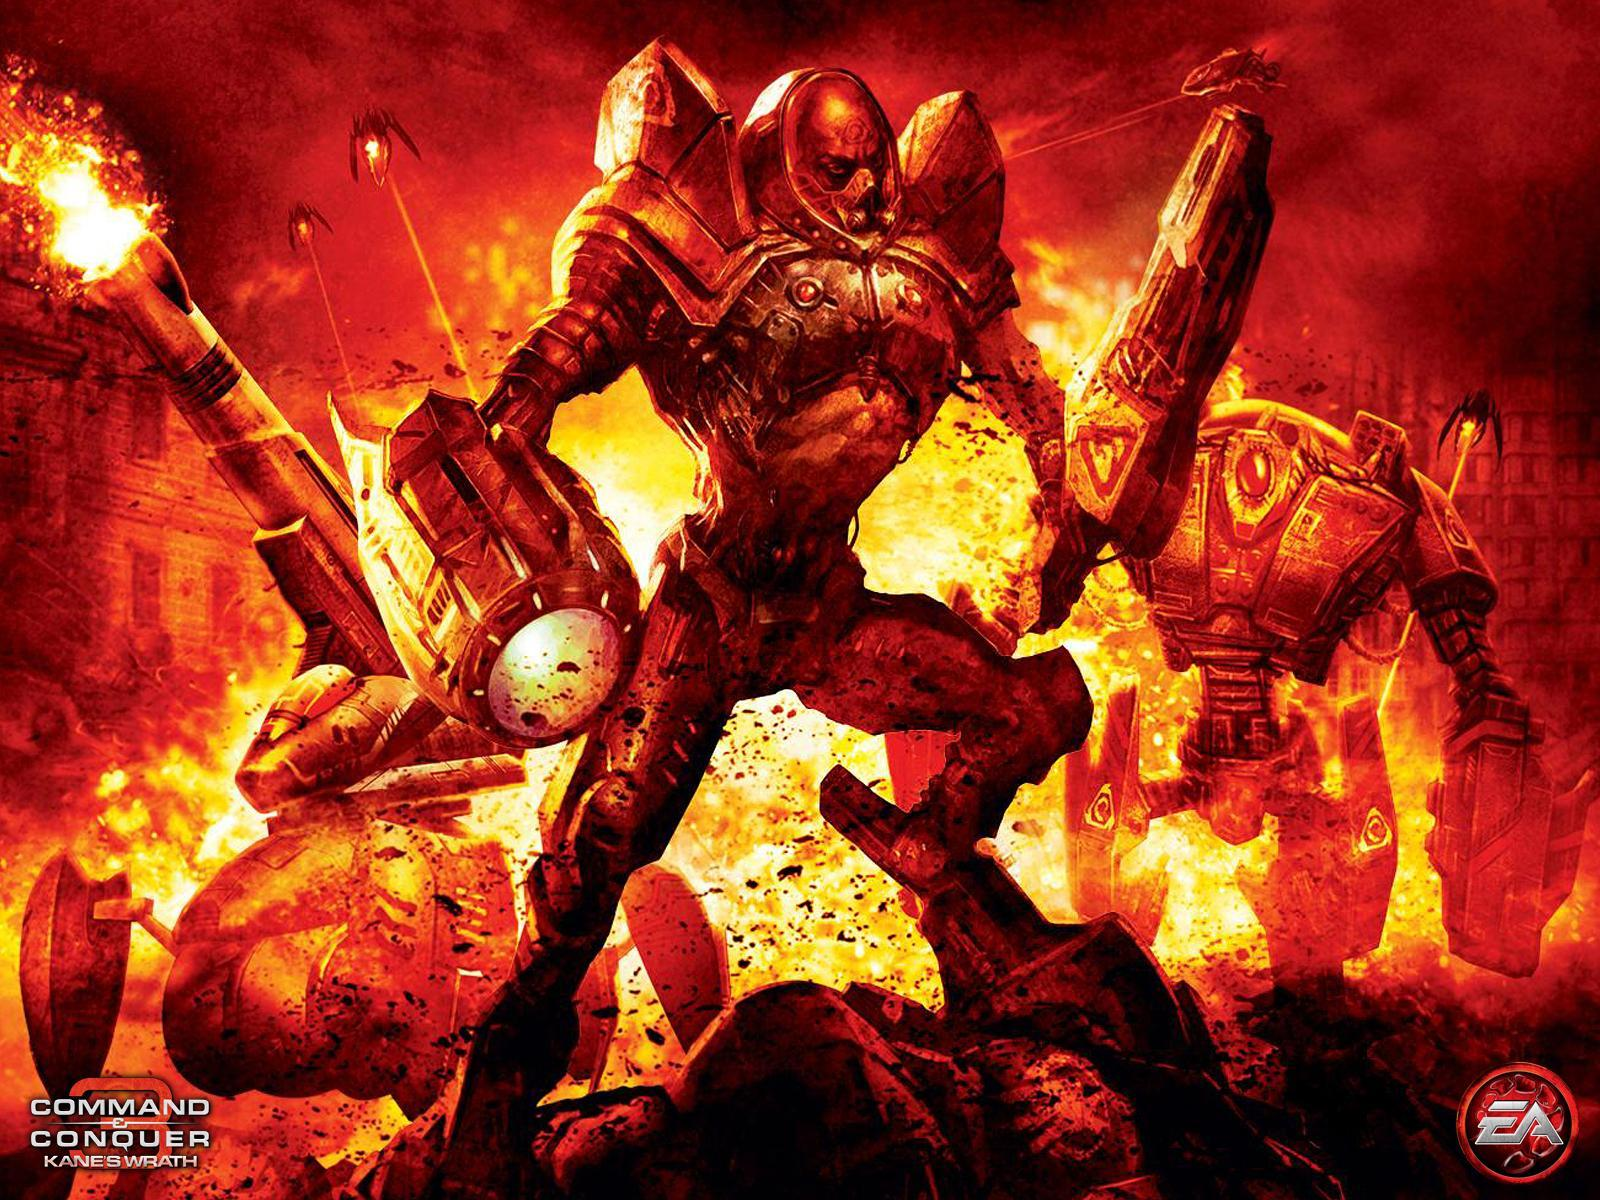 Photo Command Conquer Command Conquer Kanes Wrath 1600x1200 1600x1200